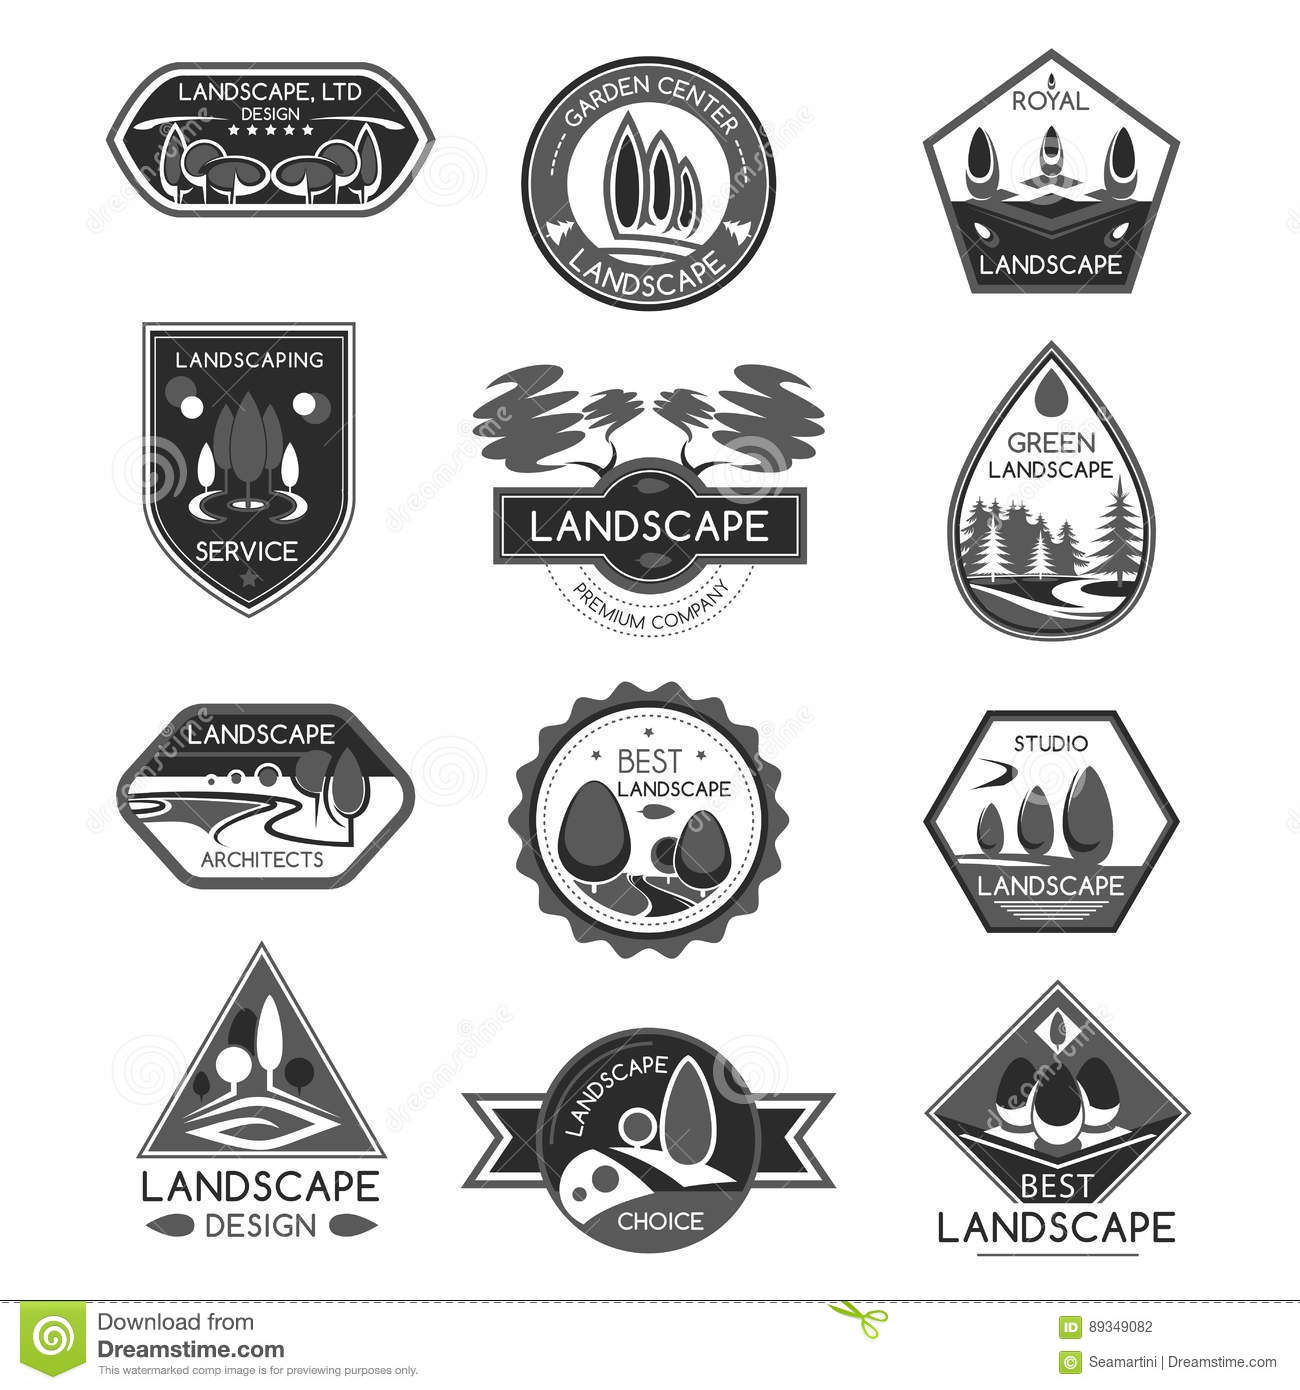 Landscape design company vector icons set stock vector for Landscape design icons